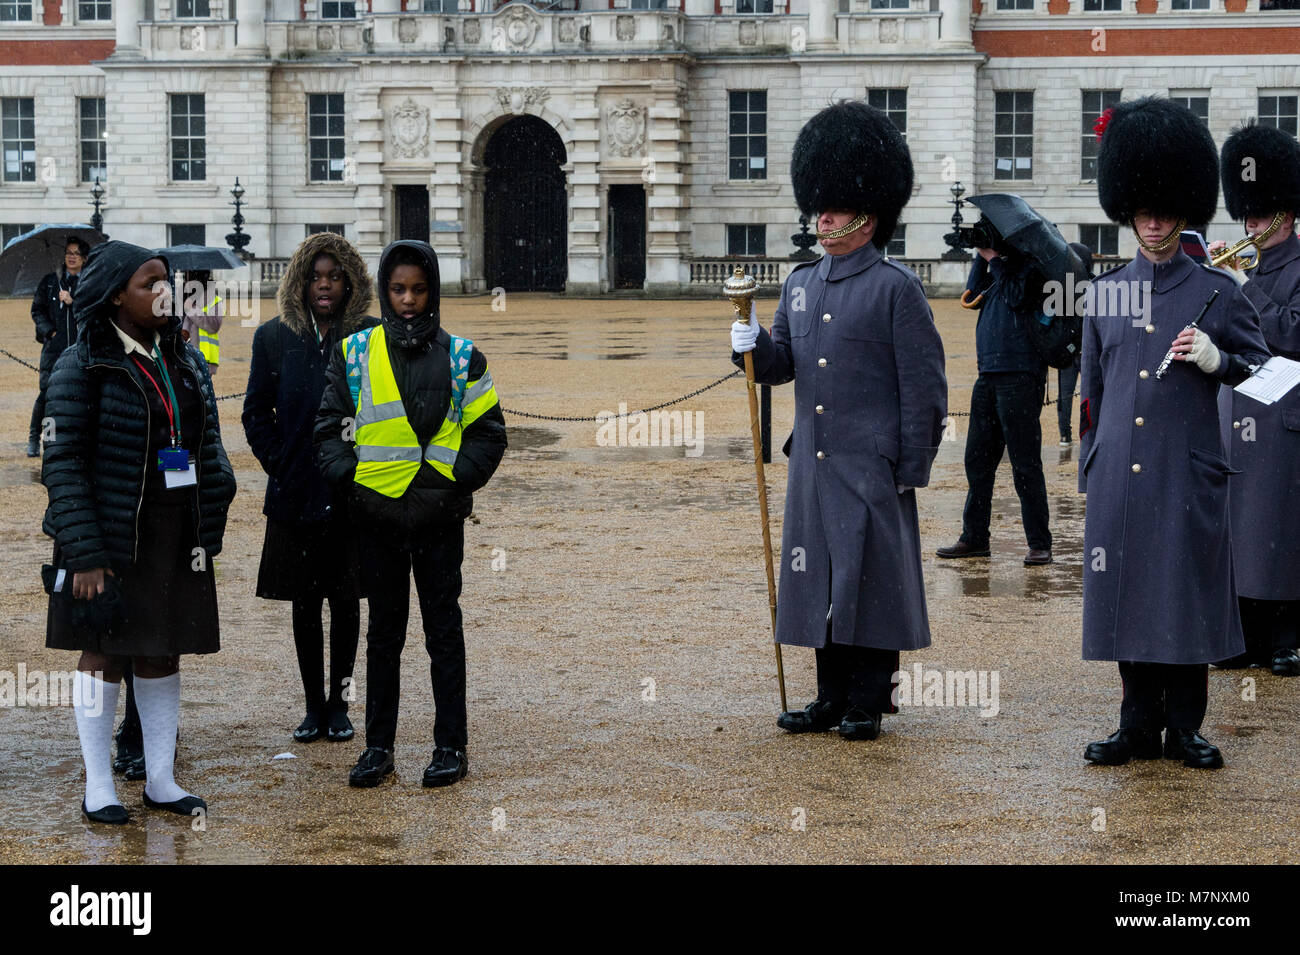 London, UK. 12th March, 2018. 400 members of the Commonwealth Children's Choir accompanied by the Band of the Coldstream - Stock Image